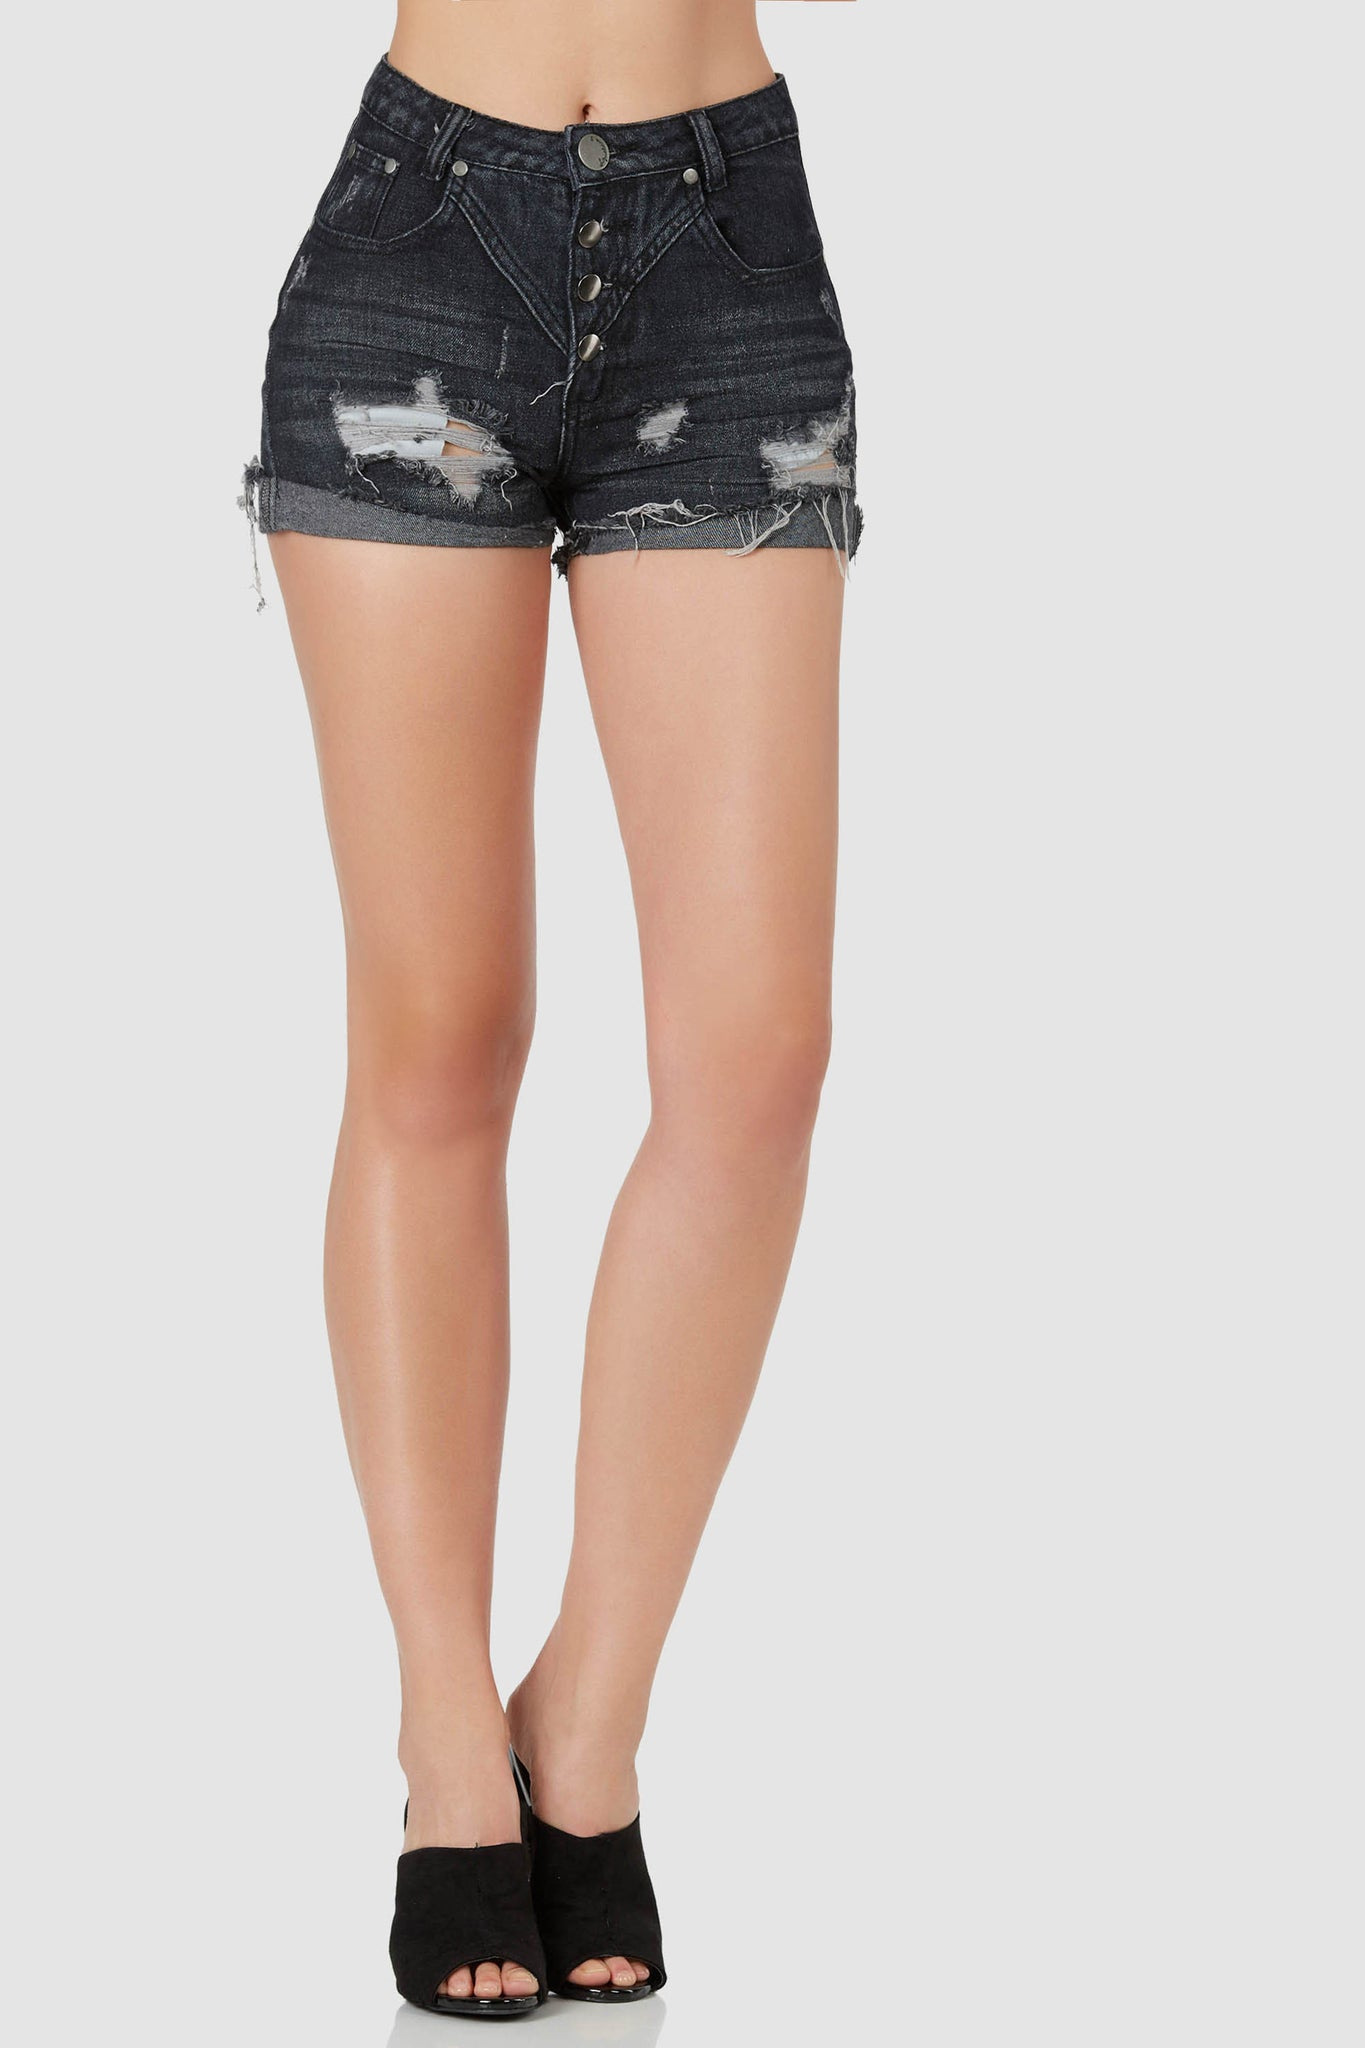 Vintage style high rise denim shorts with slight fade and distressed detailing. Frayed raw hem finish, slightly cuffed for a casual touch.